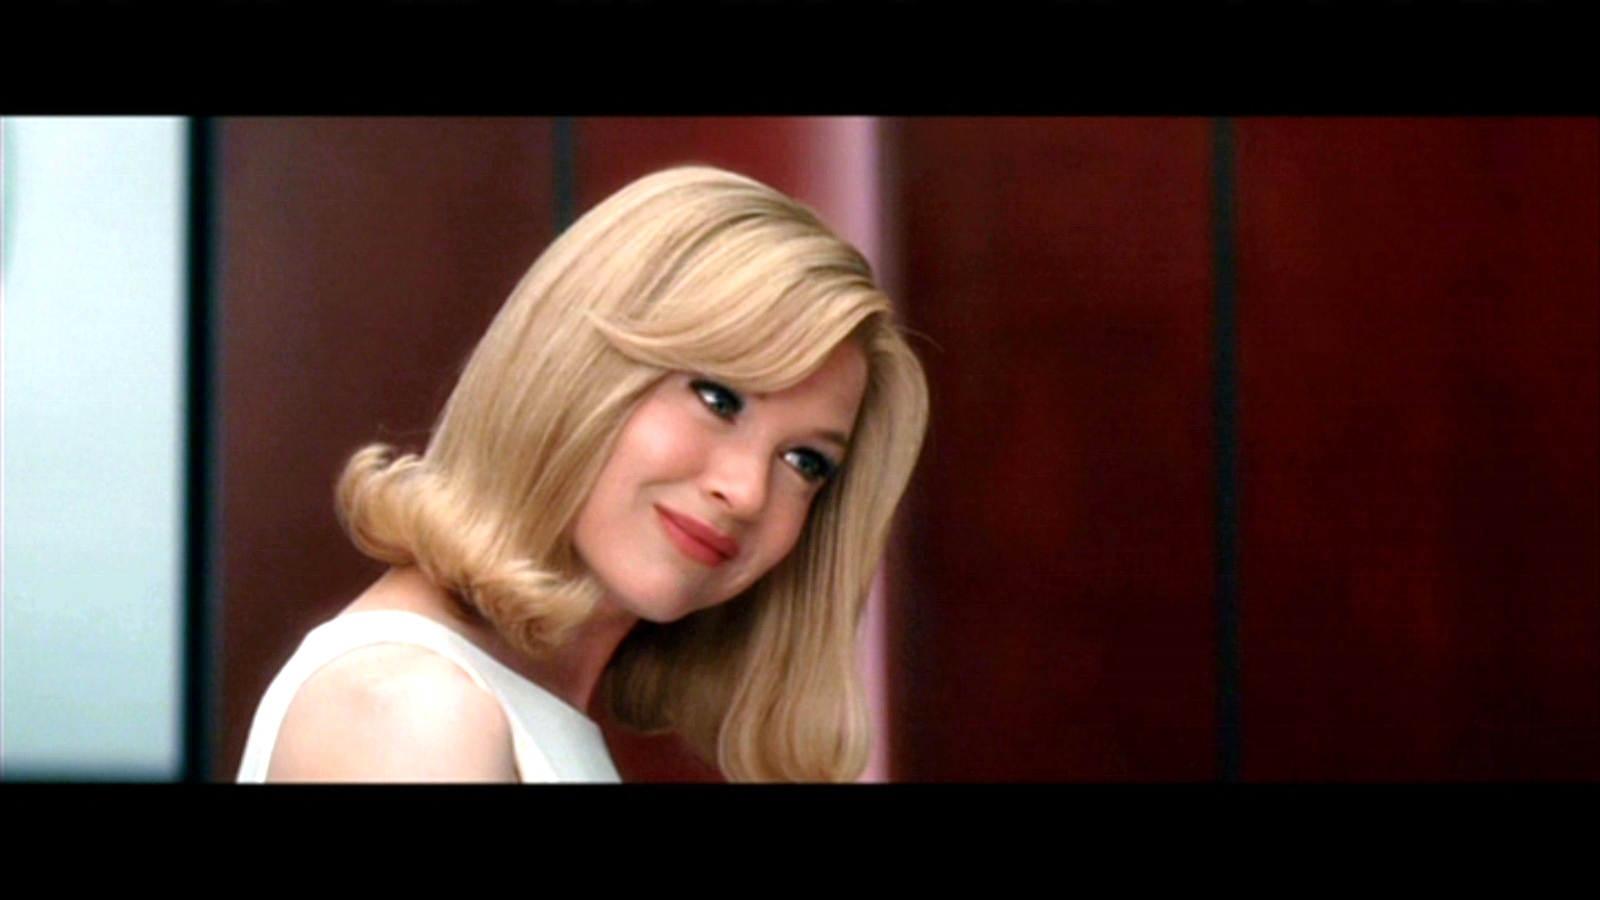 Renée in Down With Love - Renée Zellweger Photo (749561 ...